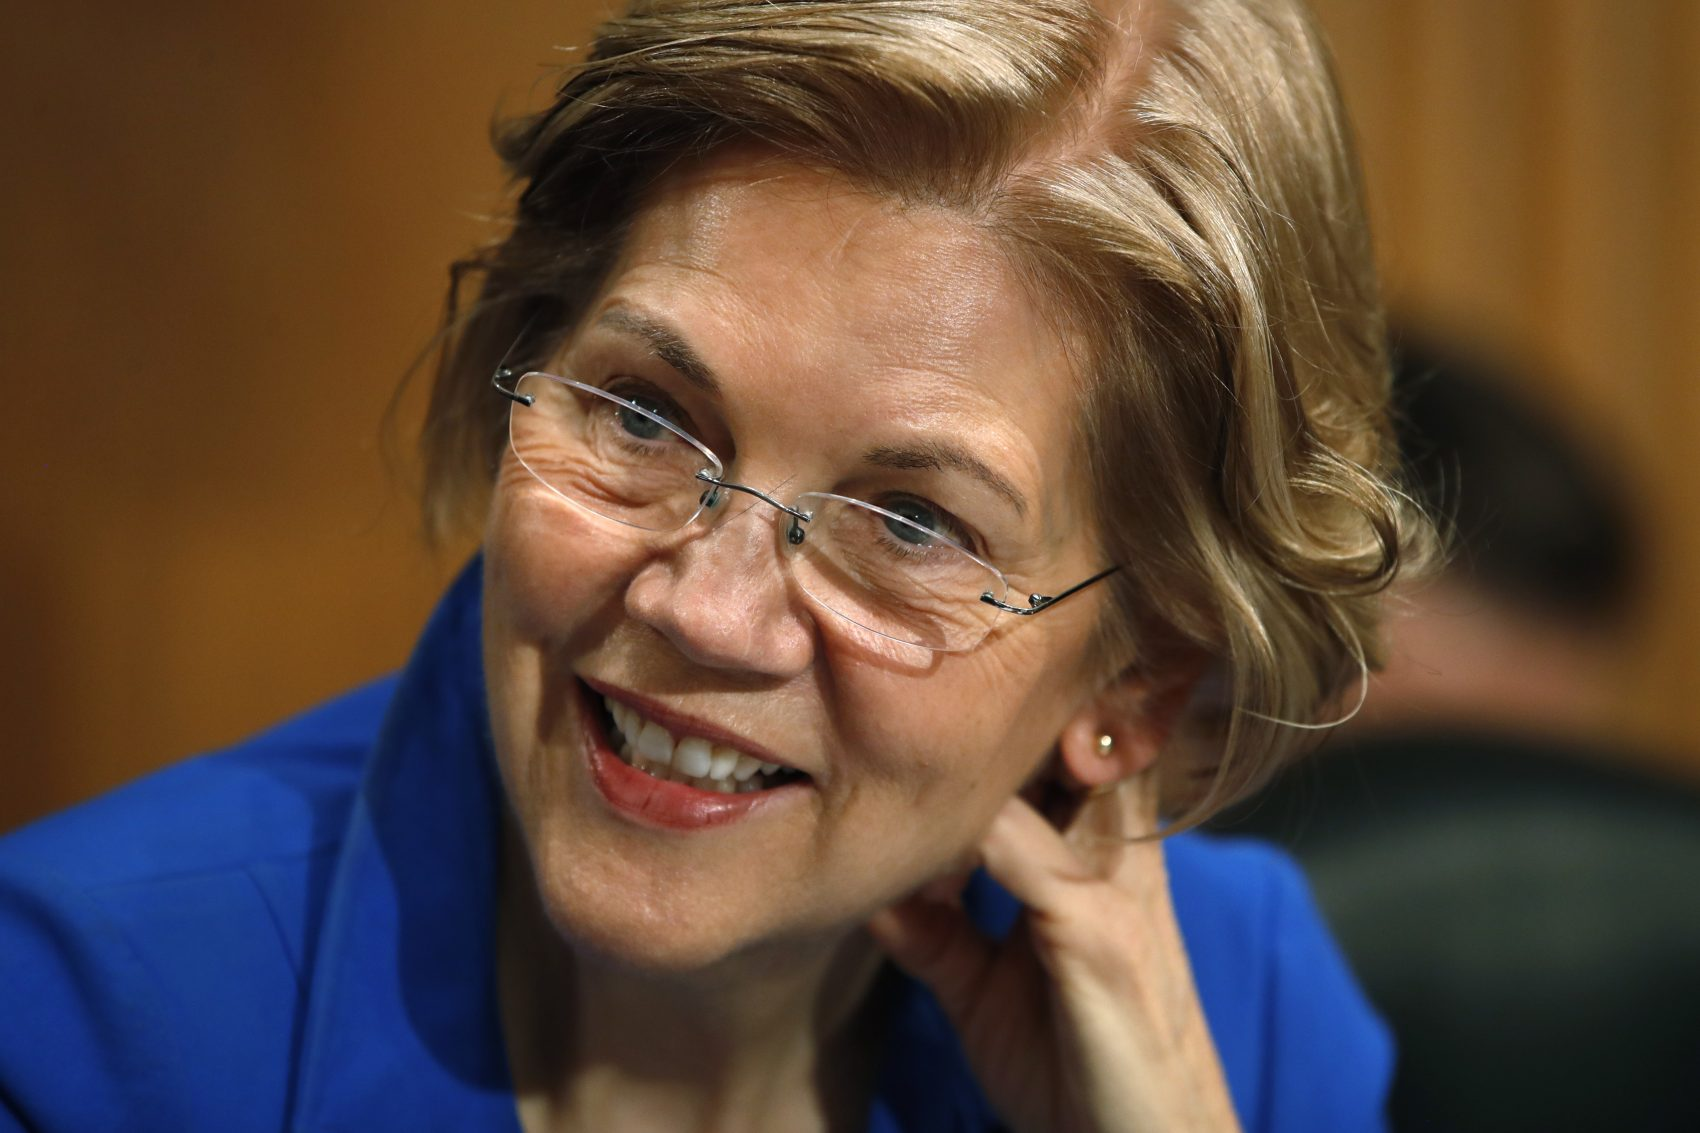 Sen. Elizabeth Warren, D-Mass., arrives for a Senate Banking Committee hearing on the nomination of Marvin Goodfriend to be a member of the Federal Reserve Board of Governors on Jan. 23 on Capitol Hill in Washington. (Jacquelyn Martin/AP)